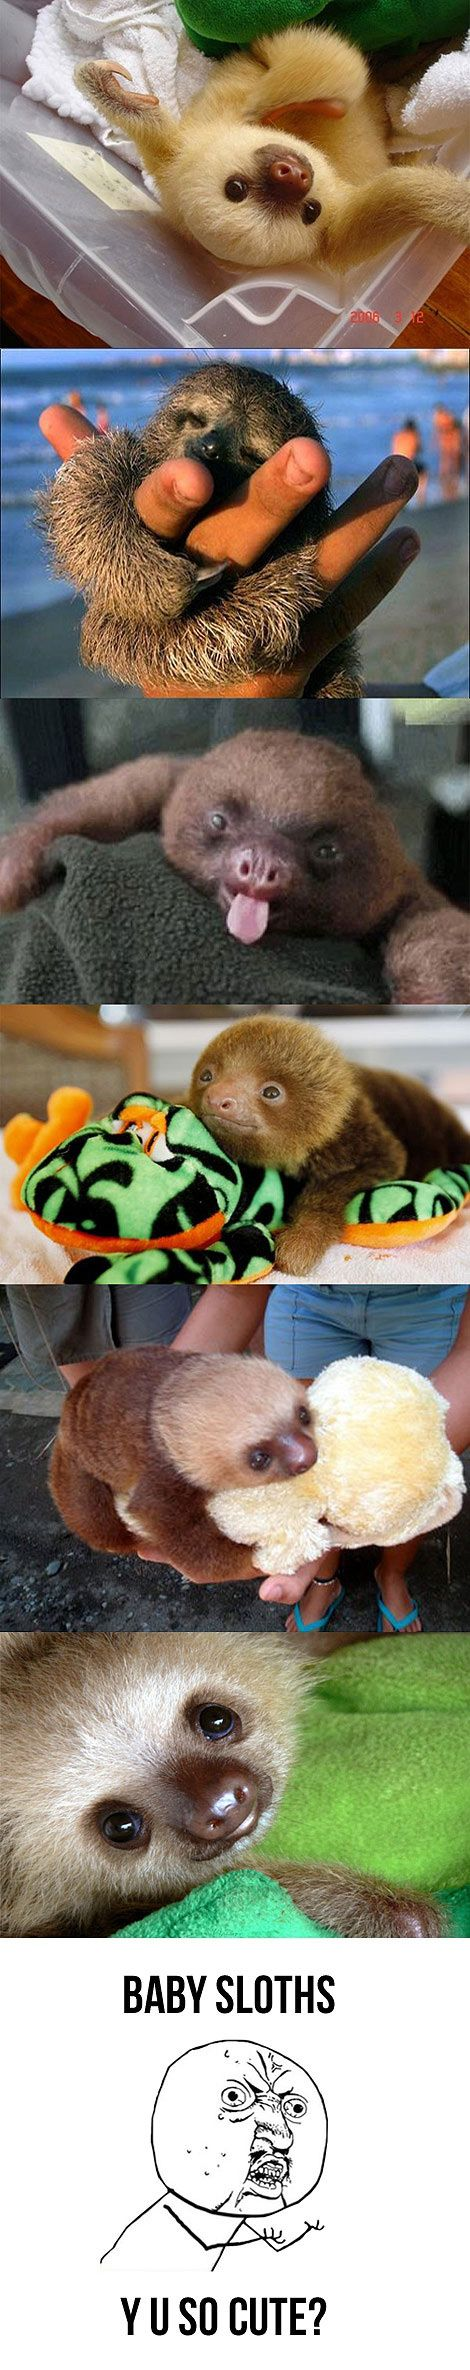 Baby sloths that have won over the internet.